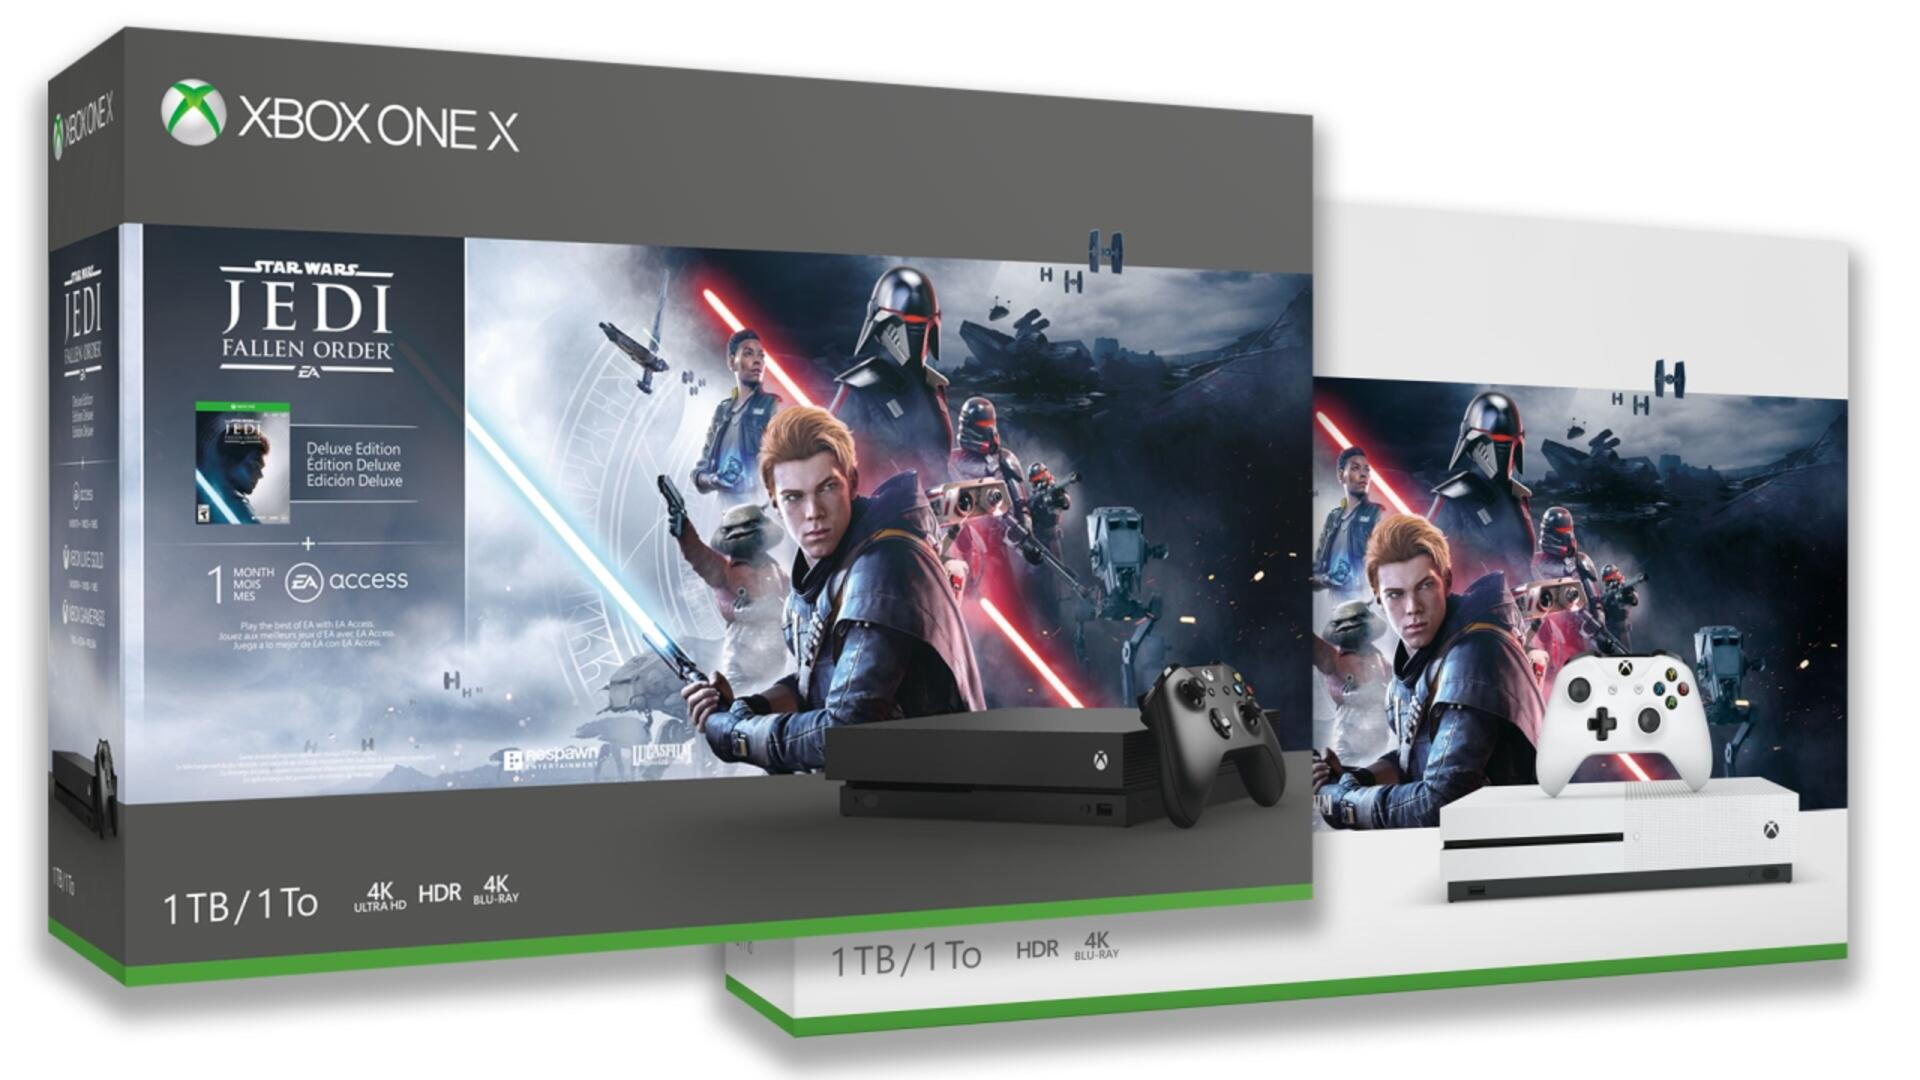 Star Wars Jedi: Fallen Order Bundles Bring the Force to Xbox One